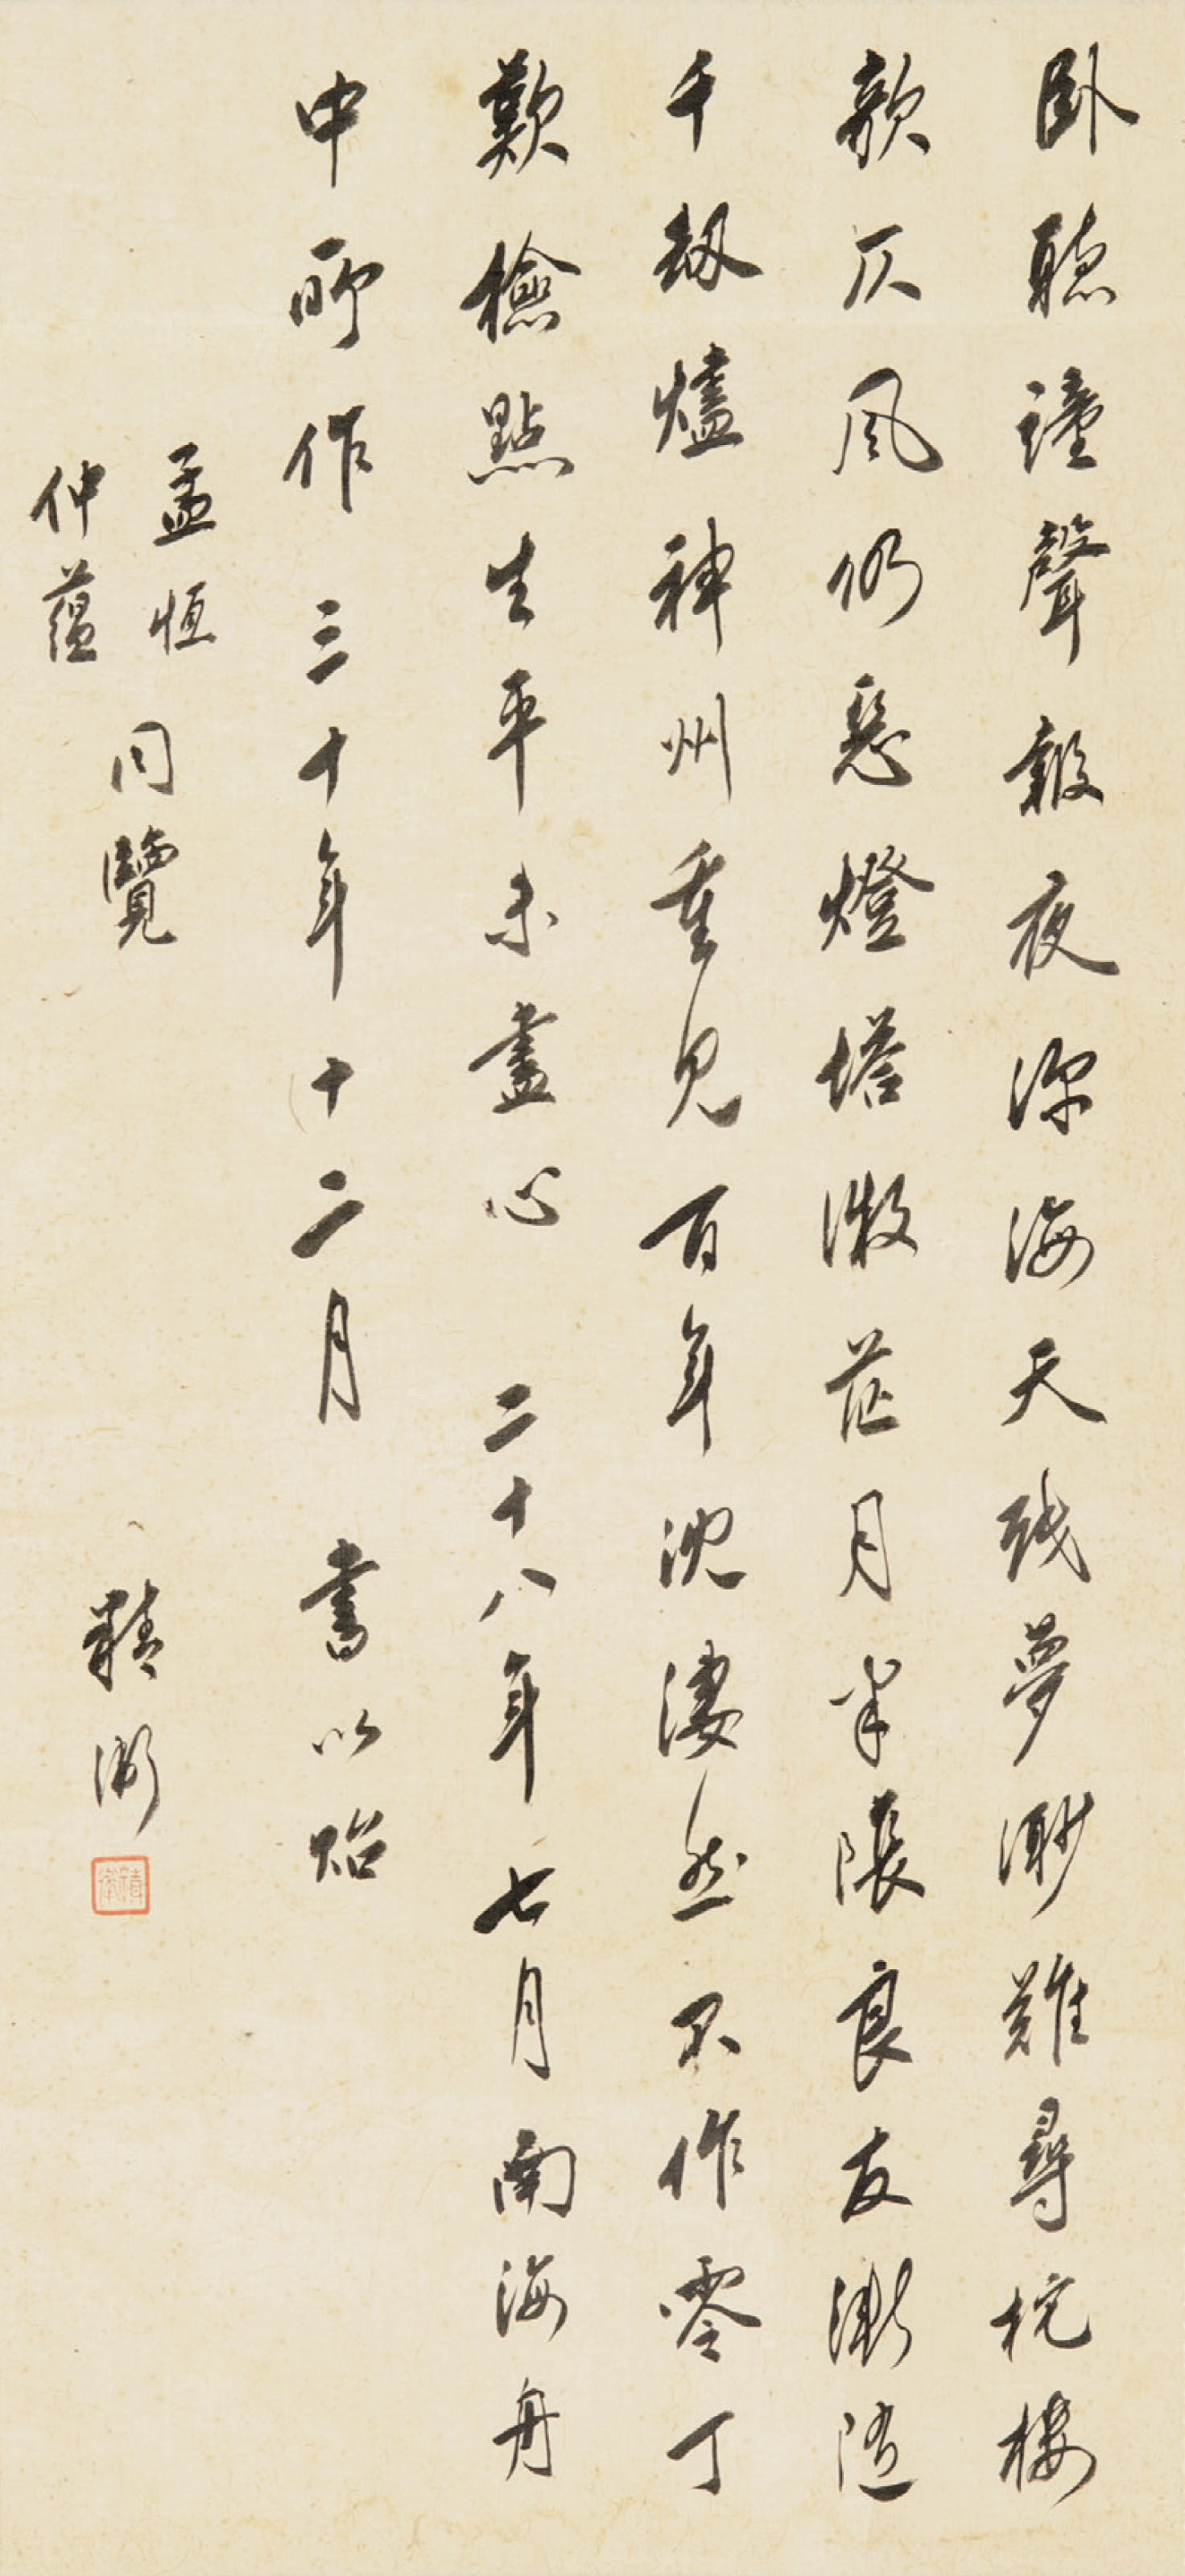 Poem from Shuangzhaolou – Night Time on Board Ship